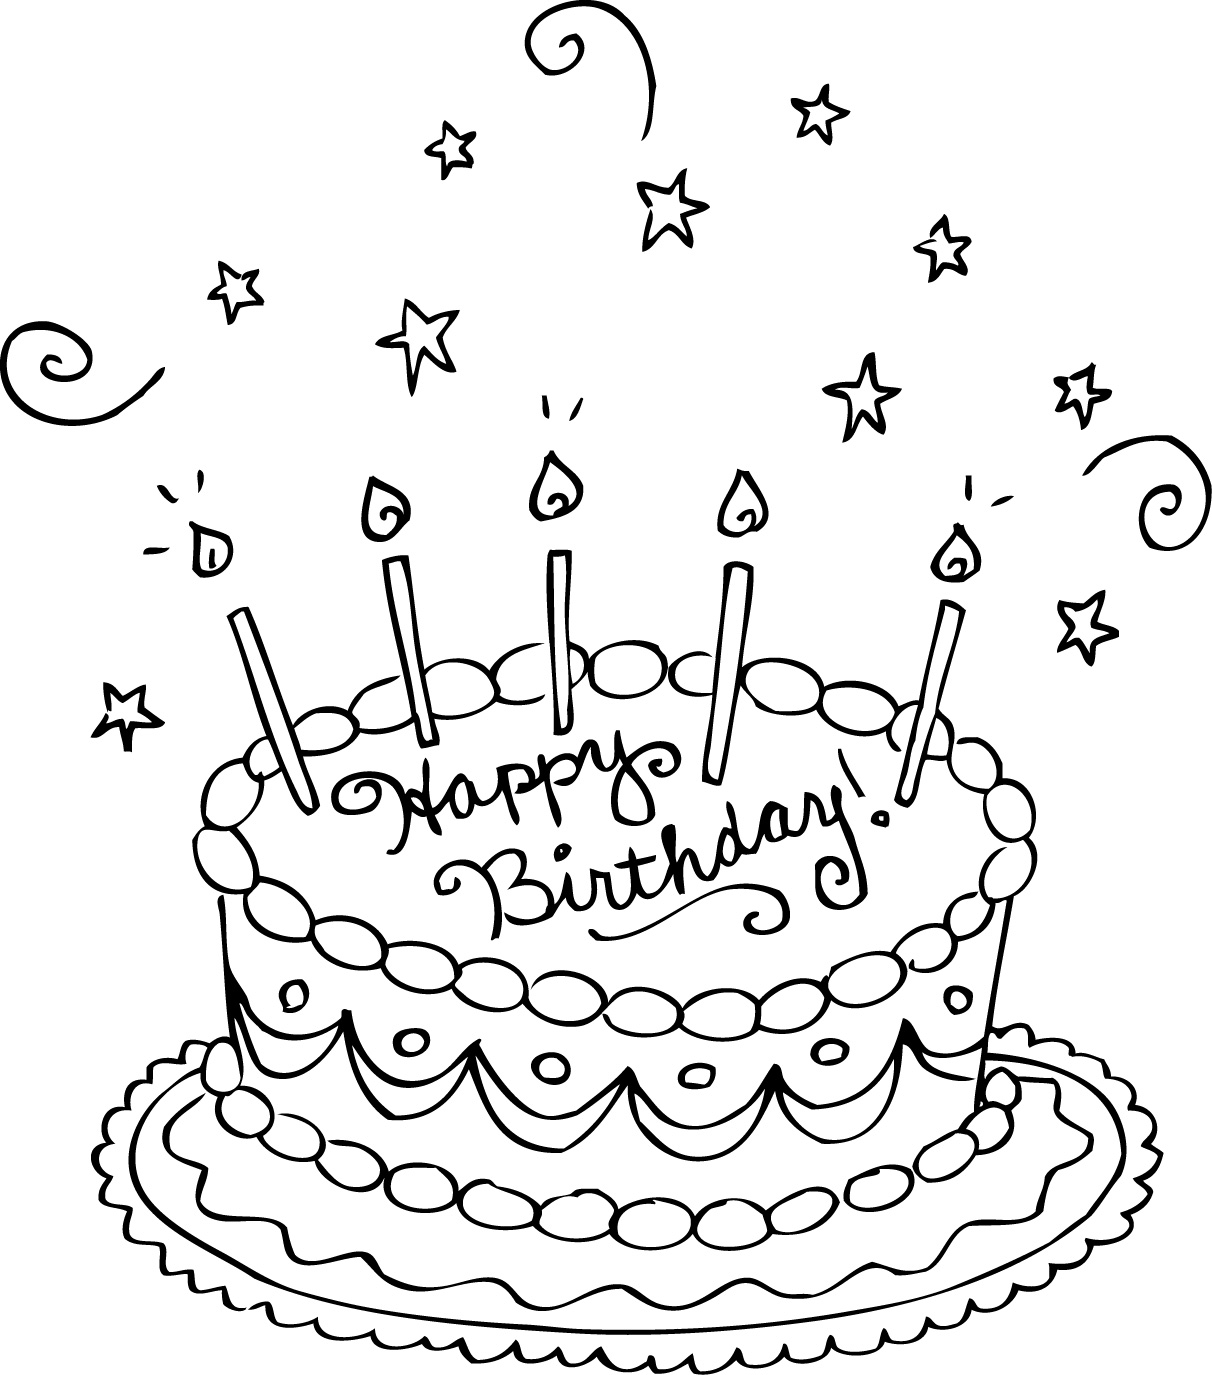 coloring page birthday cake - Birthday Cake Coloring Pages